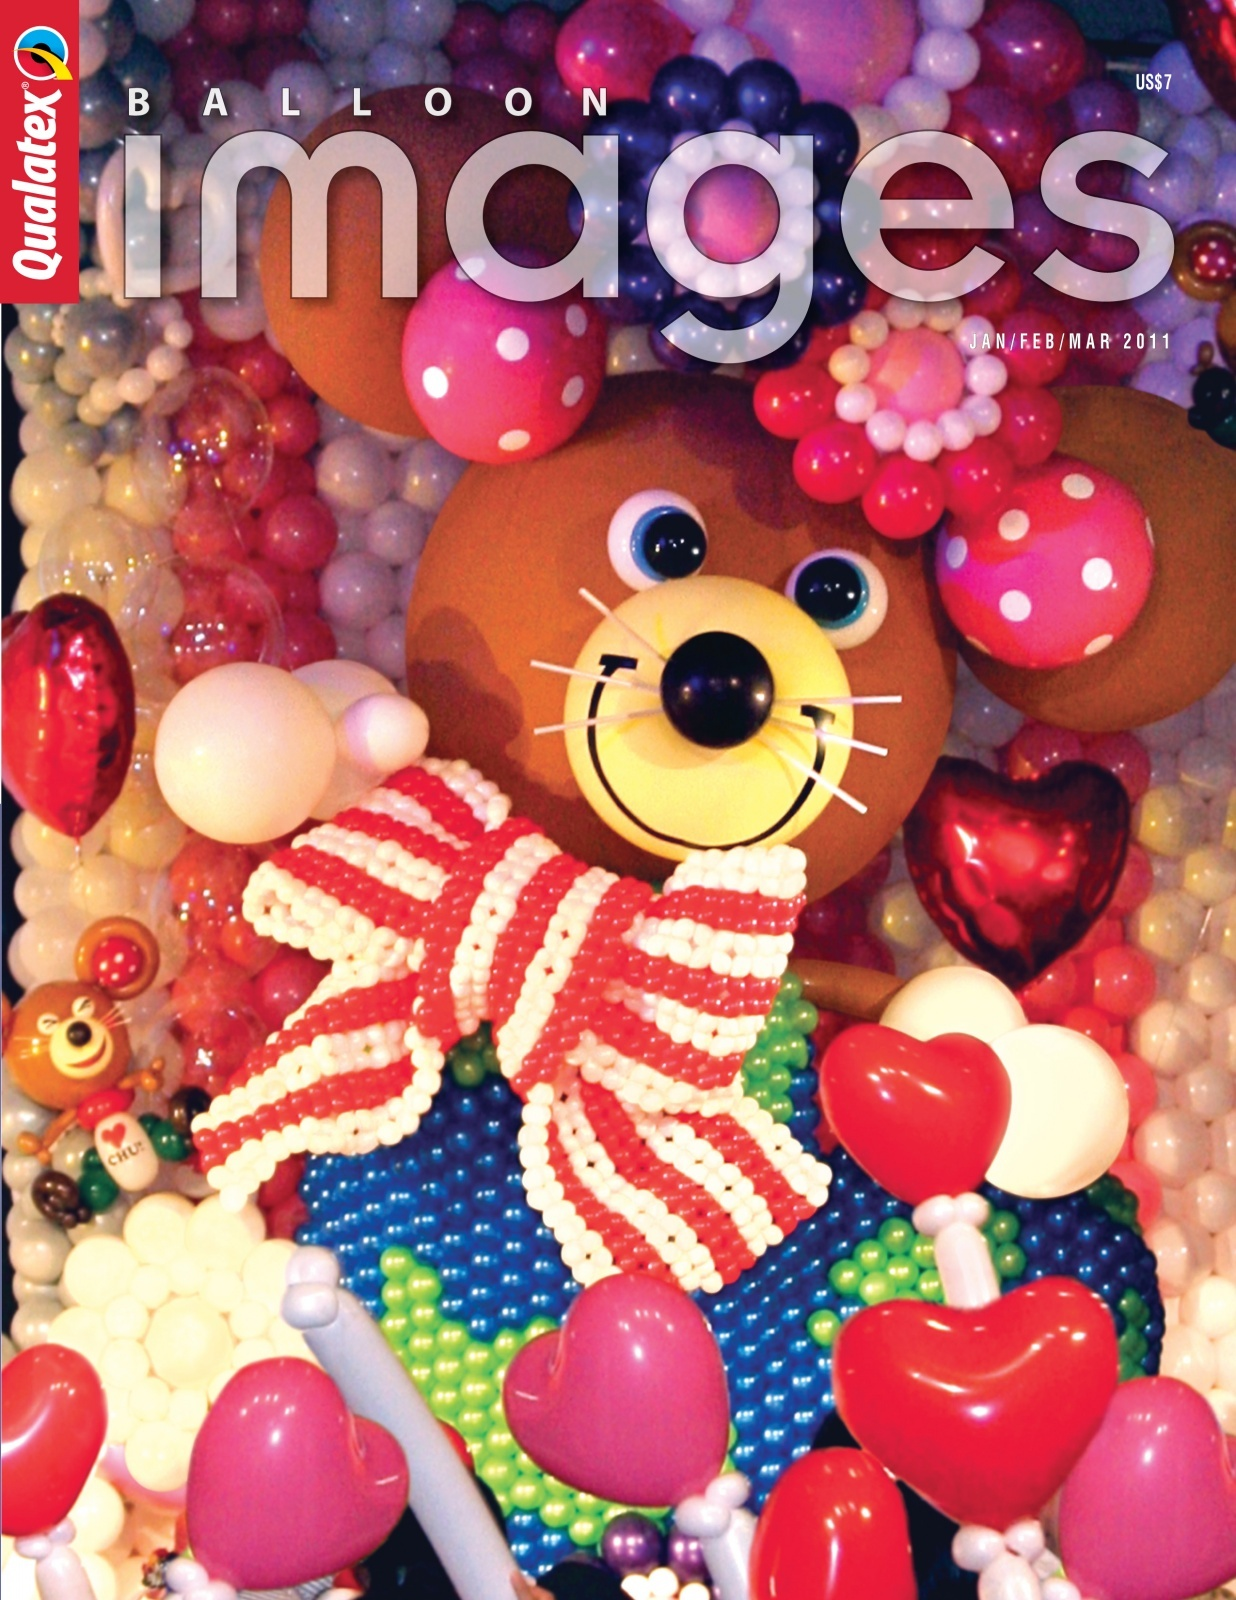 Balloon decoration training materials for Balloon decoration course